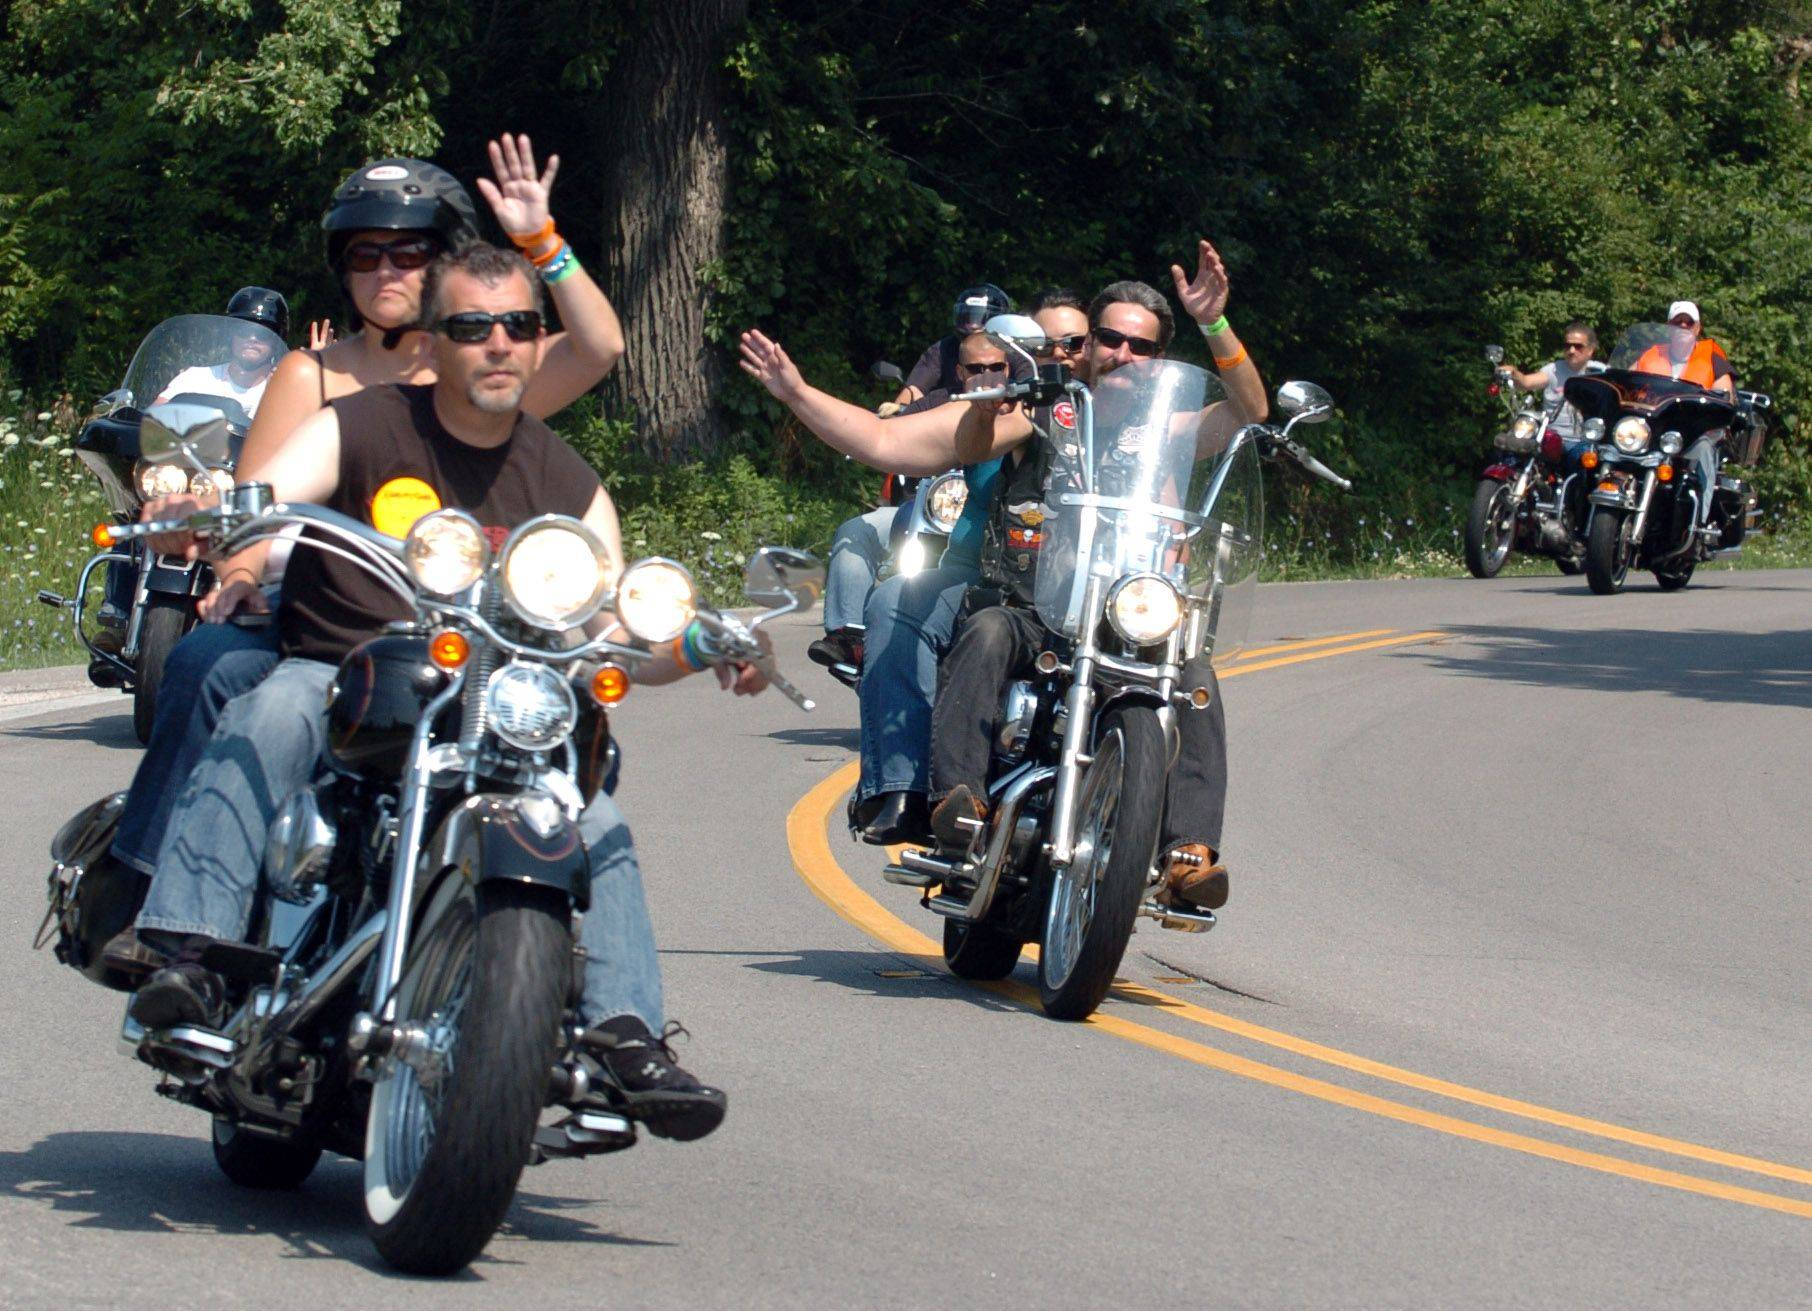 All types of bikers rode for the Pediatric Brain Tumor Foundation Sunday in Elgin, during the Chicagoland Ride for Kids.